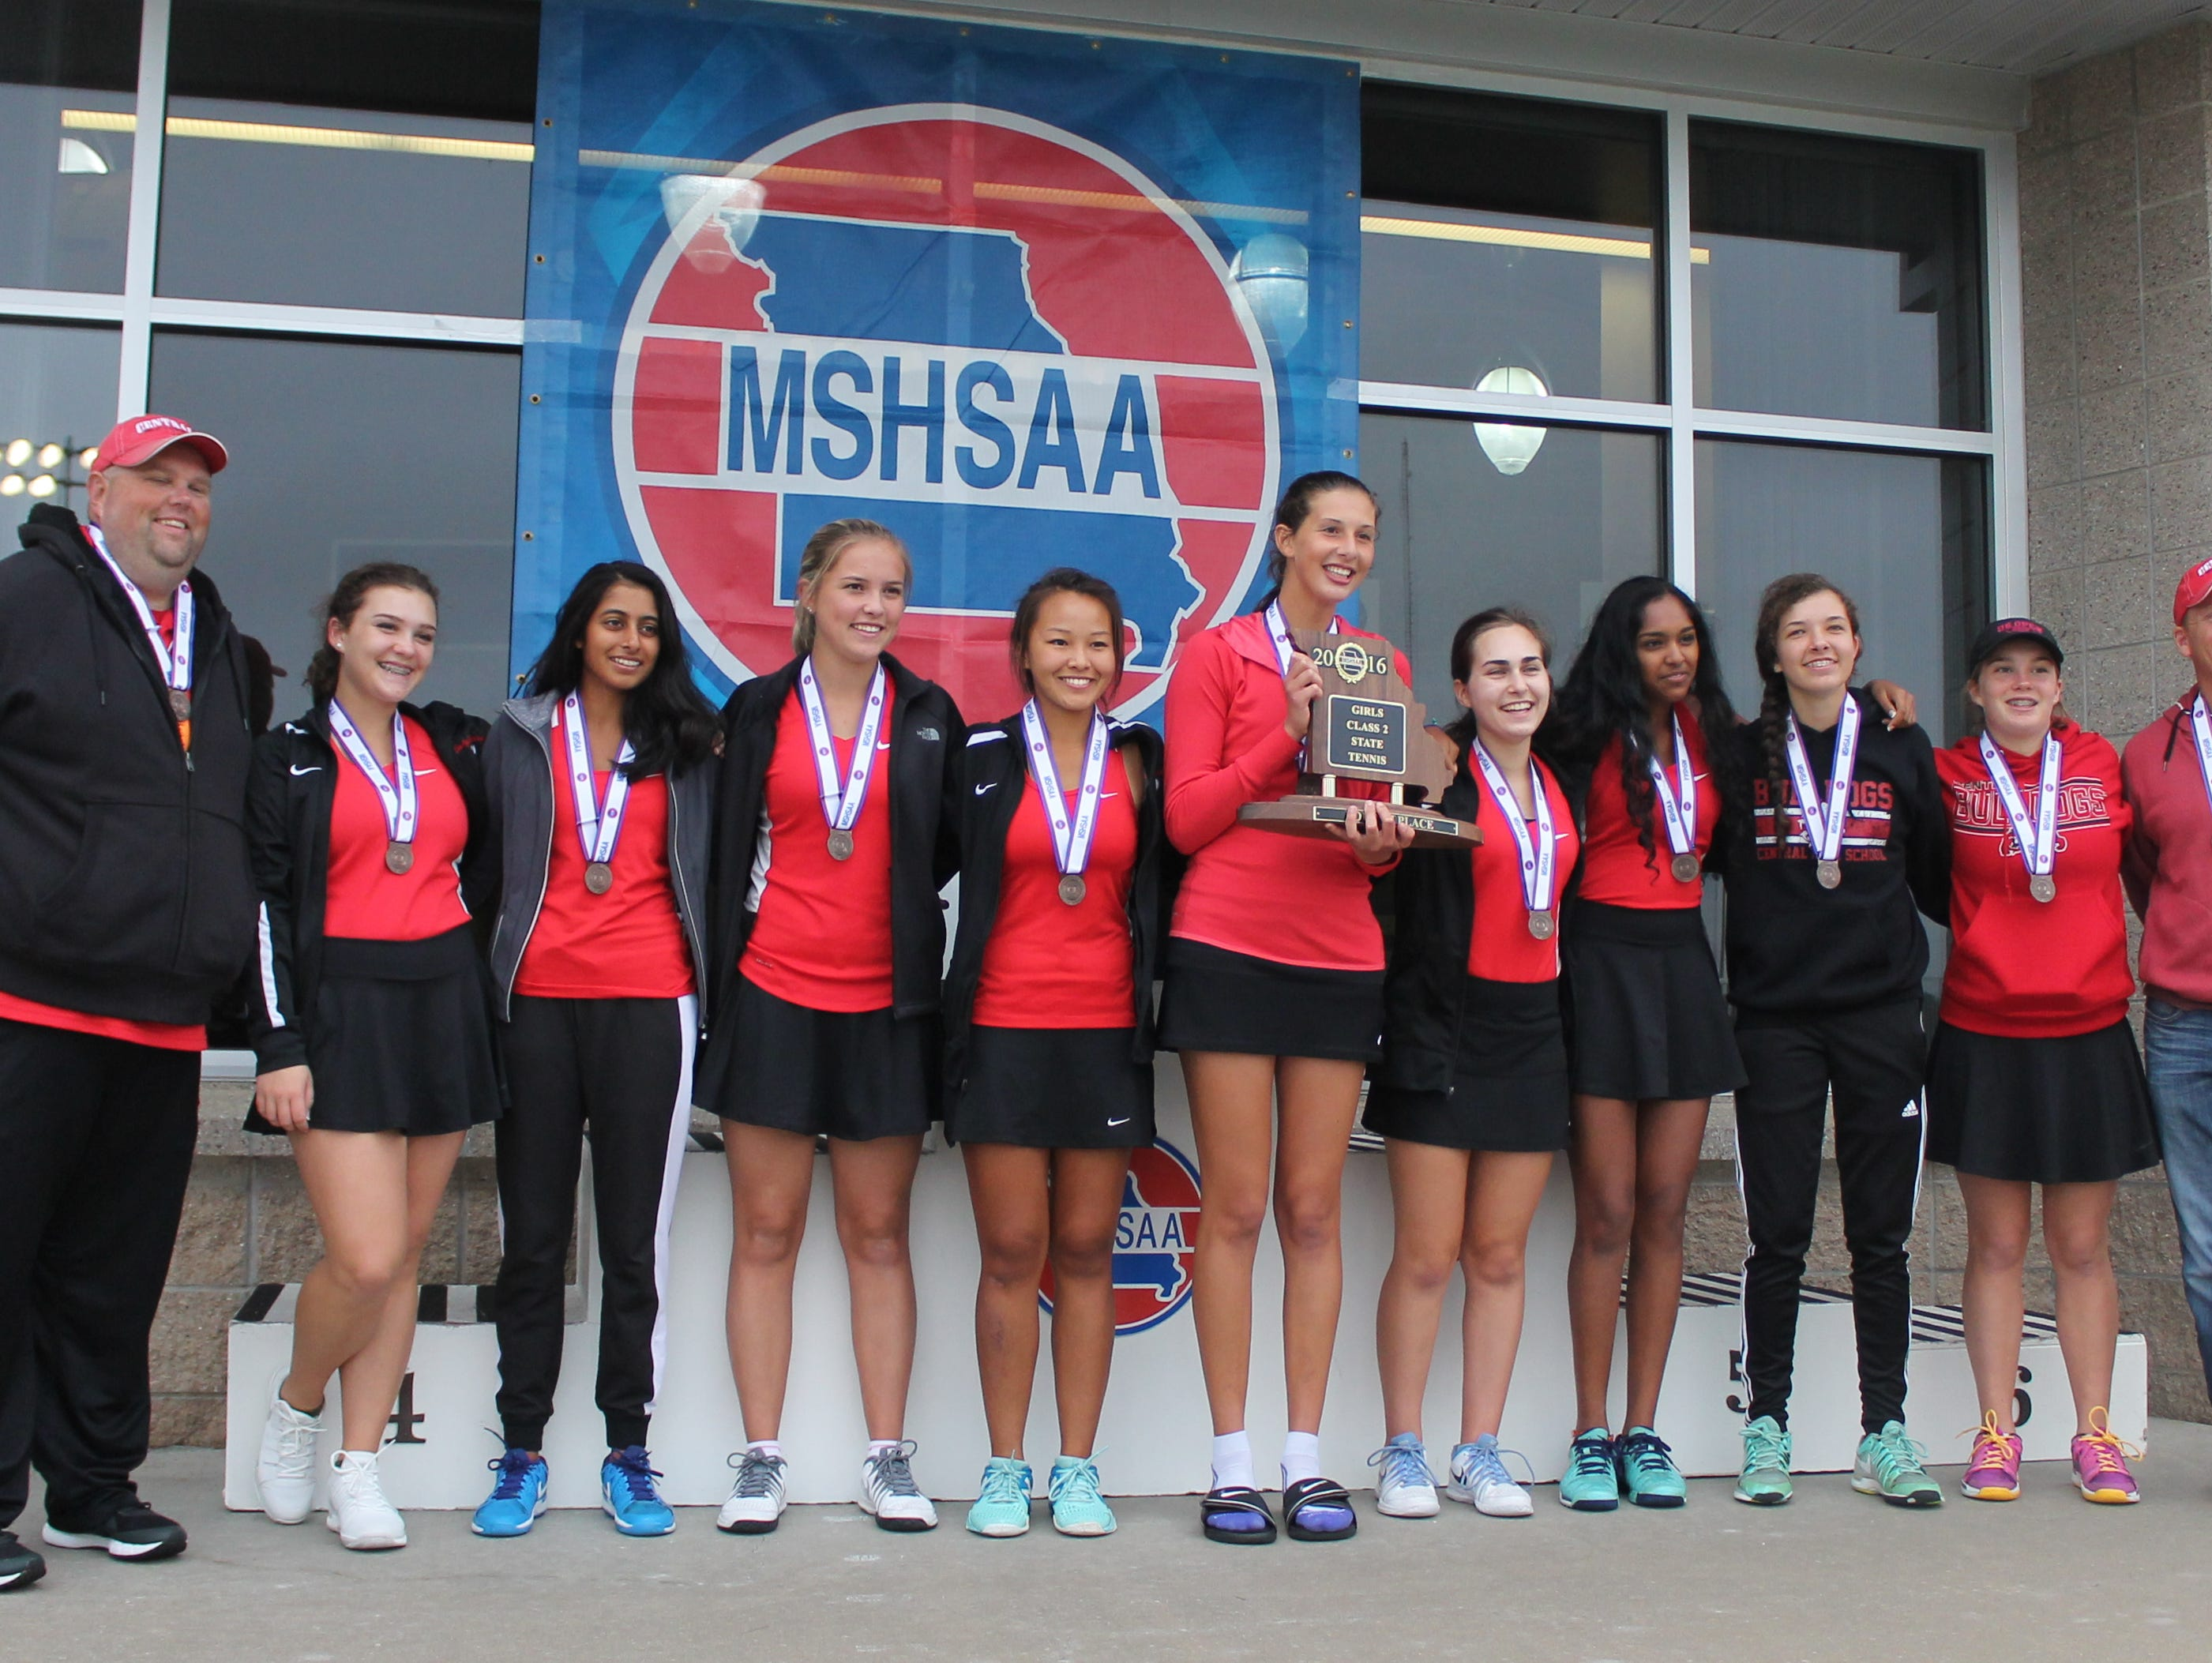 Members of the Central High School tennis team after being awarded fourth place medals at the 2016 state team tennis tournament at Cooper Tennis Complex